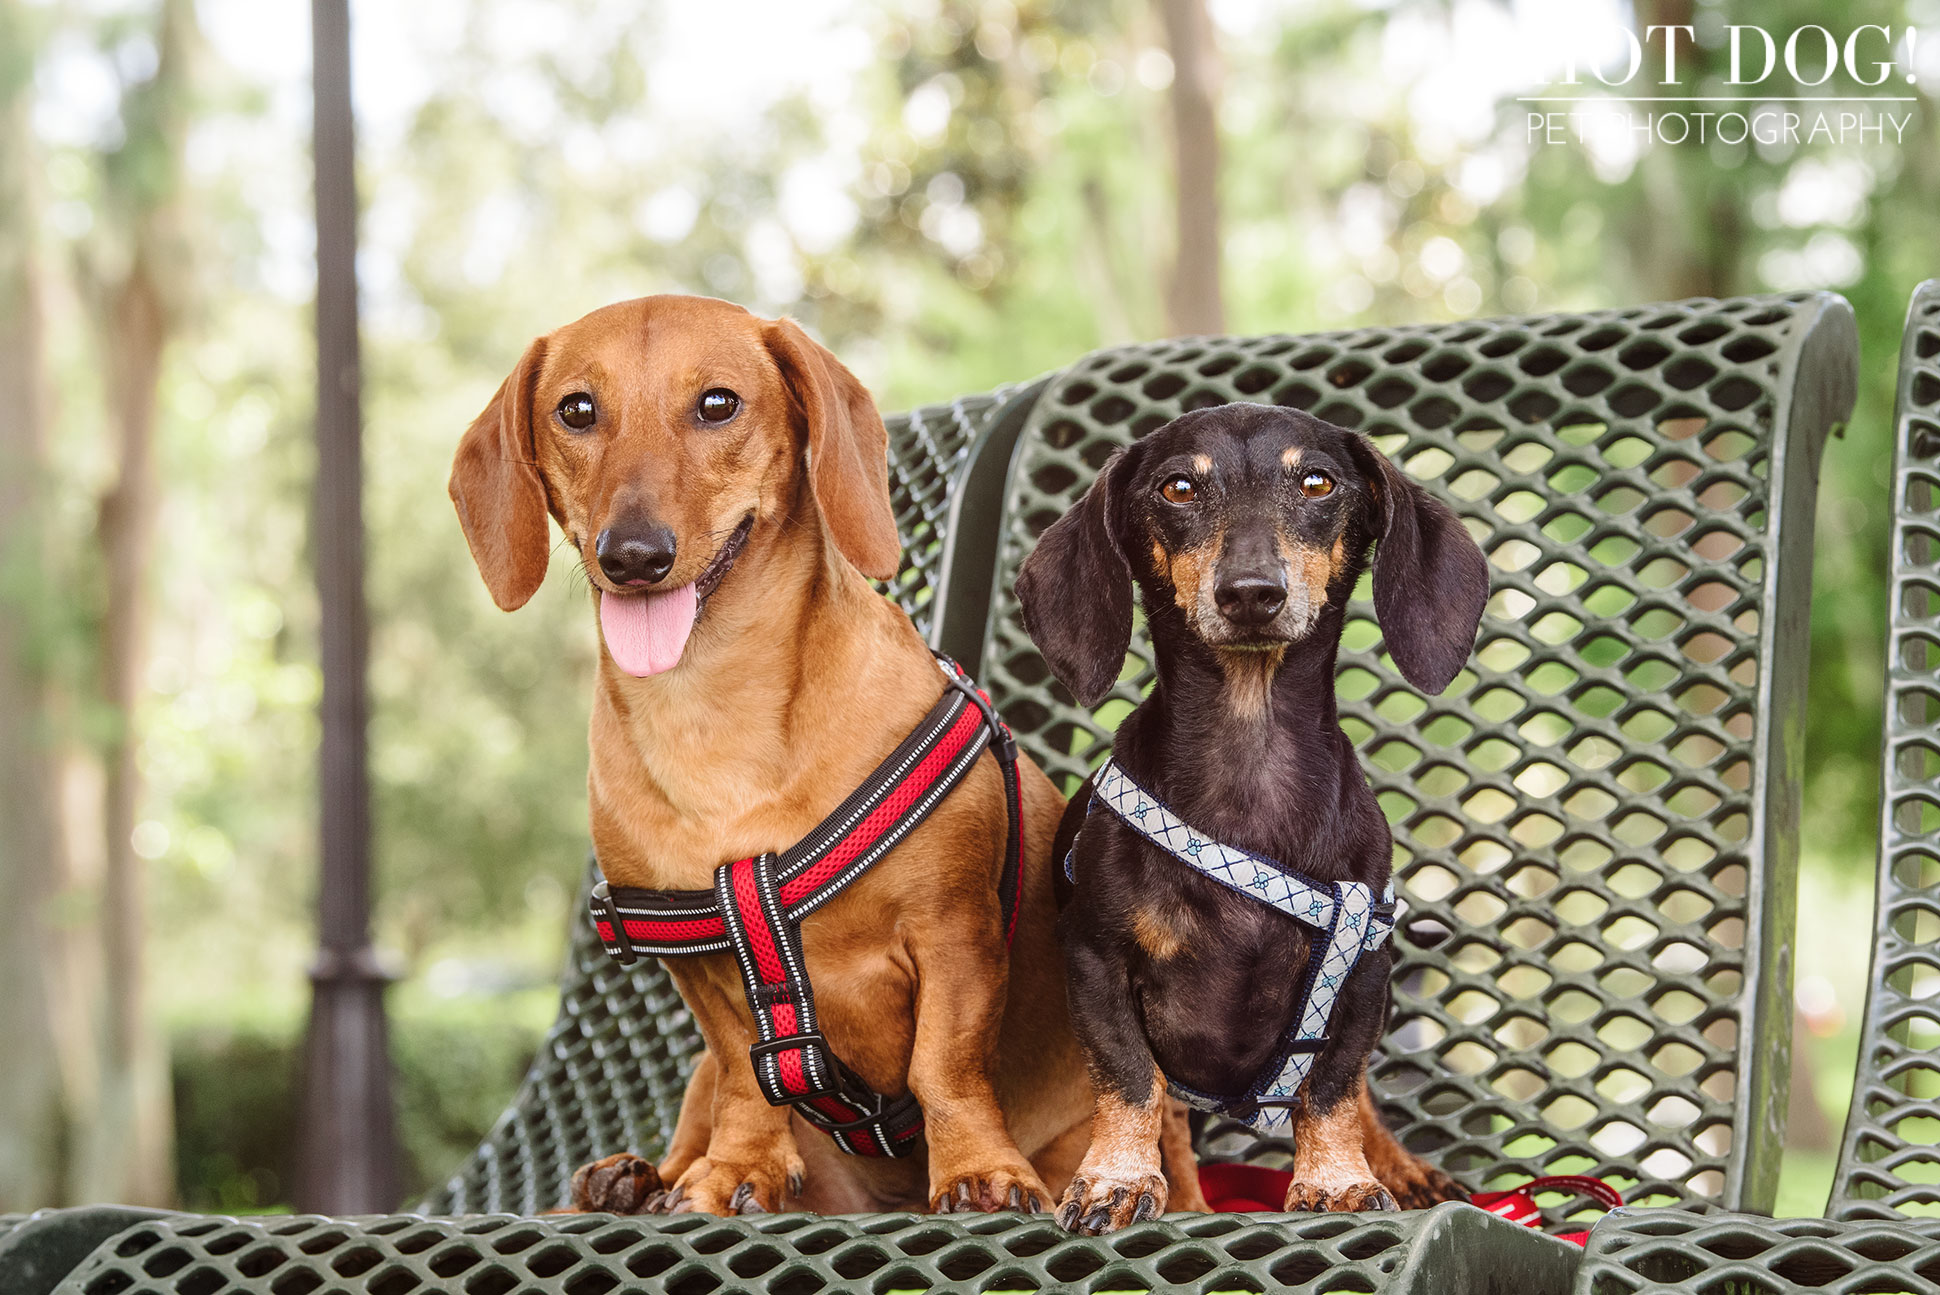 Jazz & Ossie the Dachshunds | Orlando Pet Photography